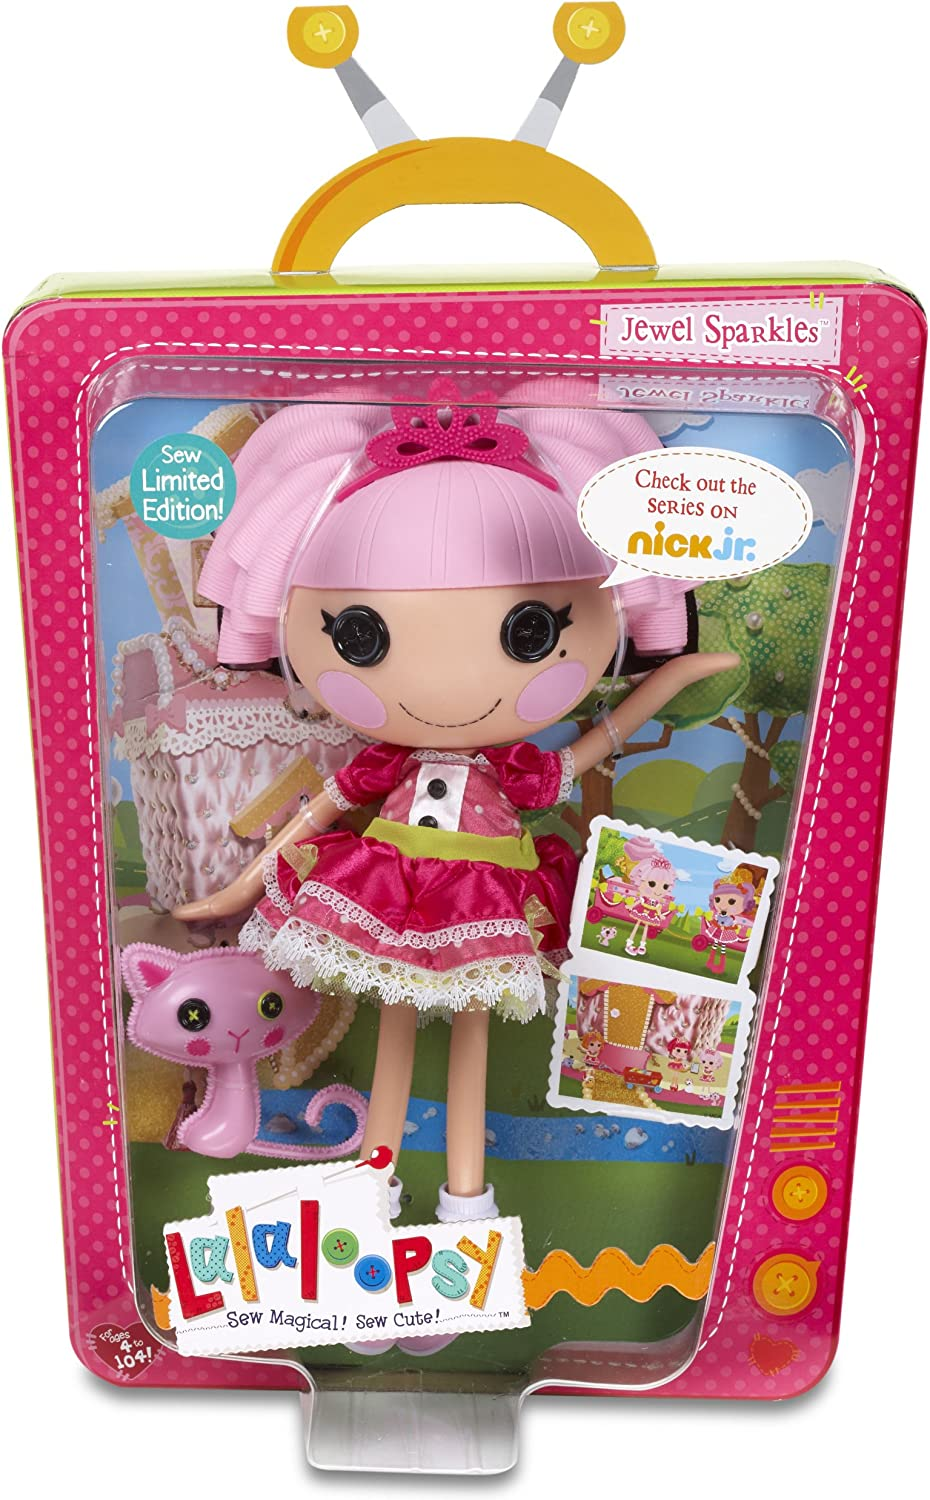 CEACO® KIDS 60pc LALALOOPSY JEWEL SPARKLES GLITTER PUZZLE Jig Saw DISTRESSED BOX